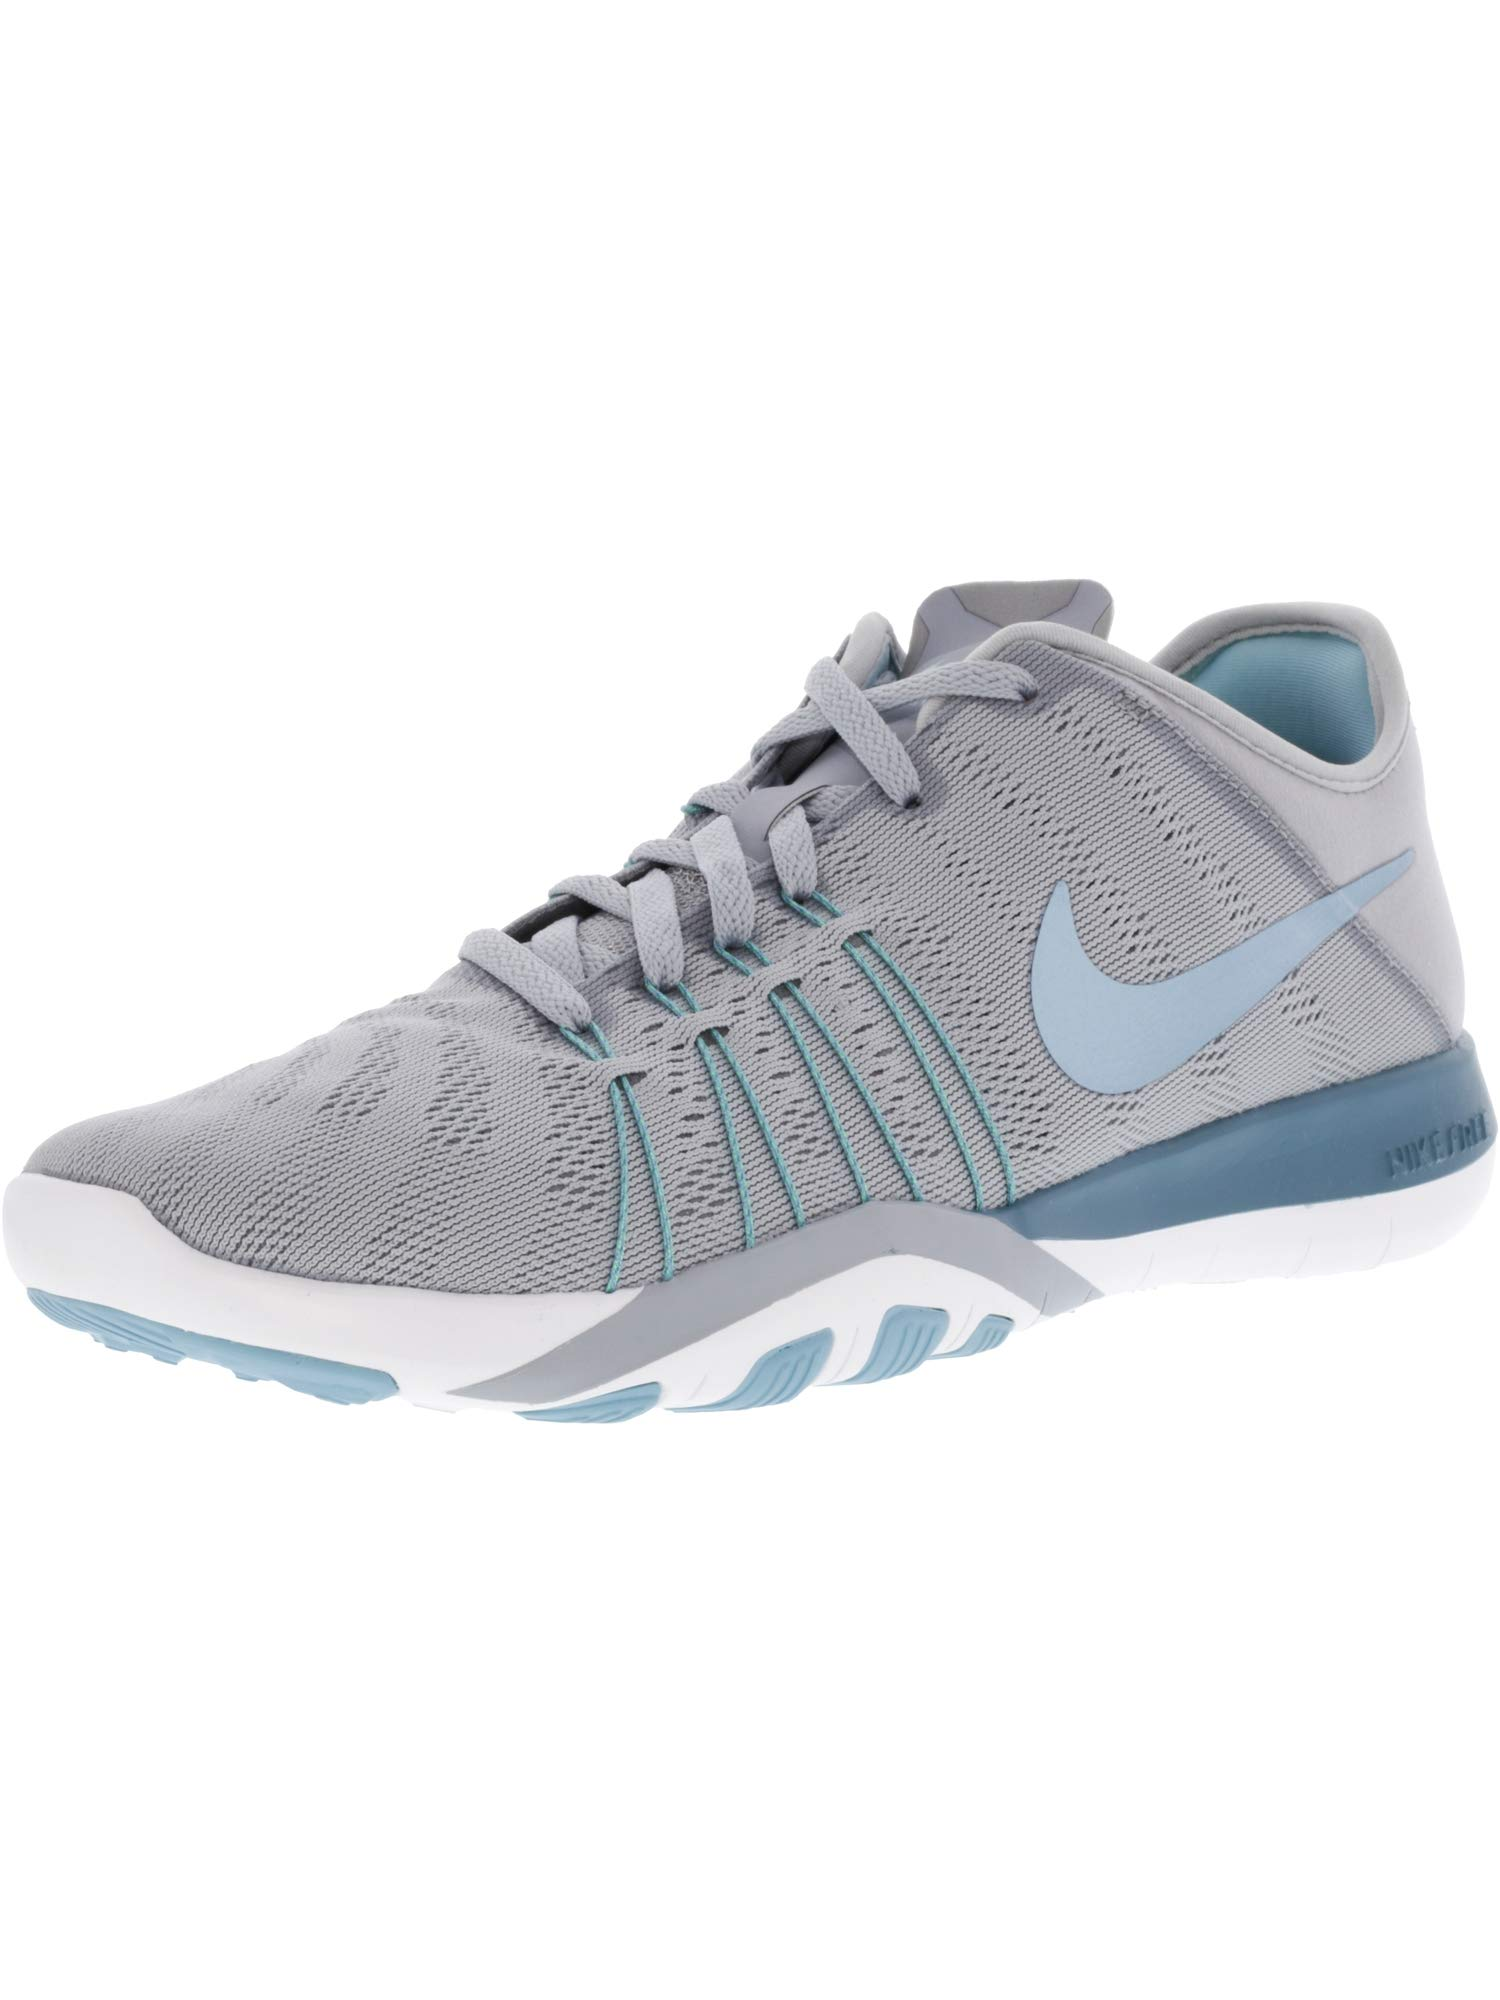 sneakers for cheap 14fb4 909a4 Galleon - Nike Womens Free TR 6 Training Shoe (8, WOLF GREY SMOKEY BLUE-MICA  BLUE-WHITE)